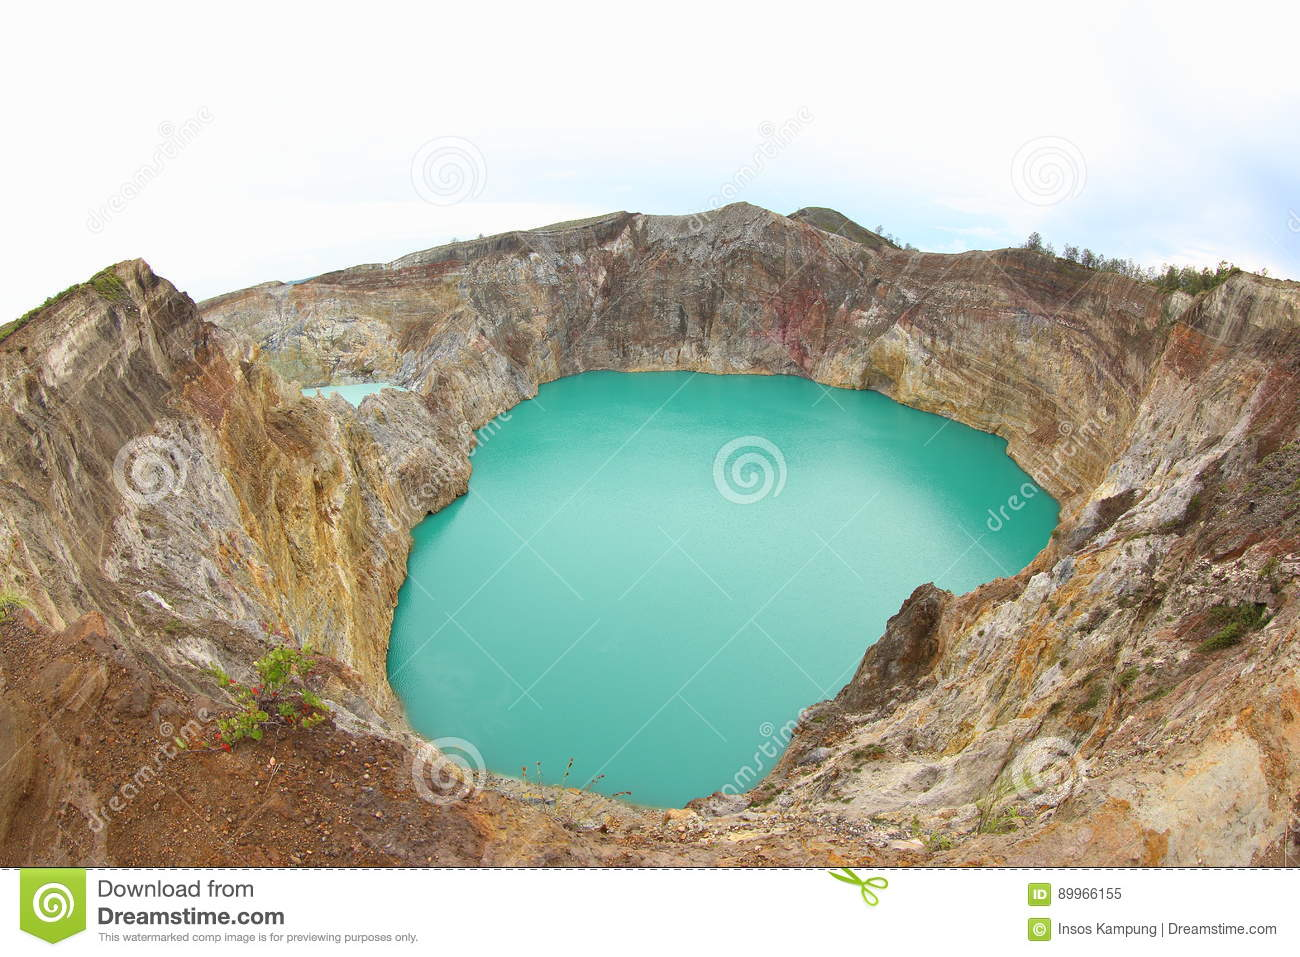 Bewitched or Enchanted Lake, Kelimutu Crater Lakes